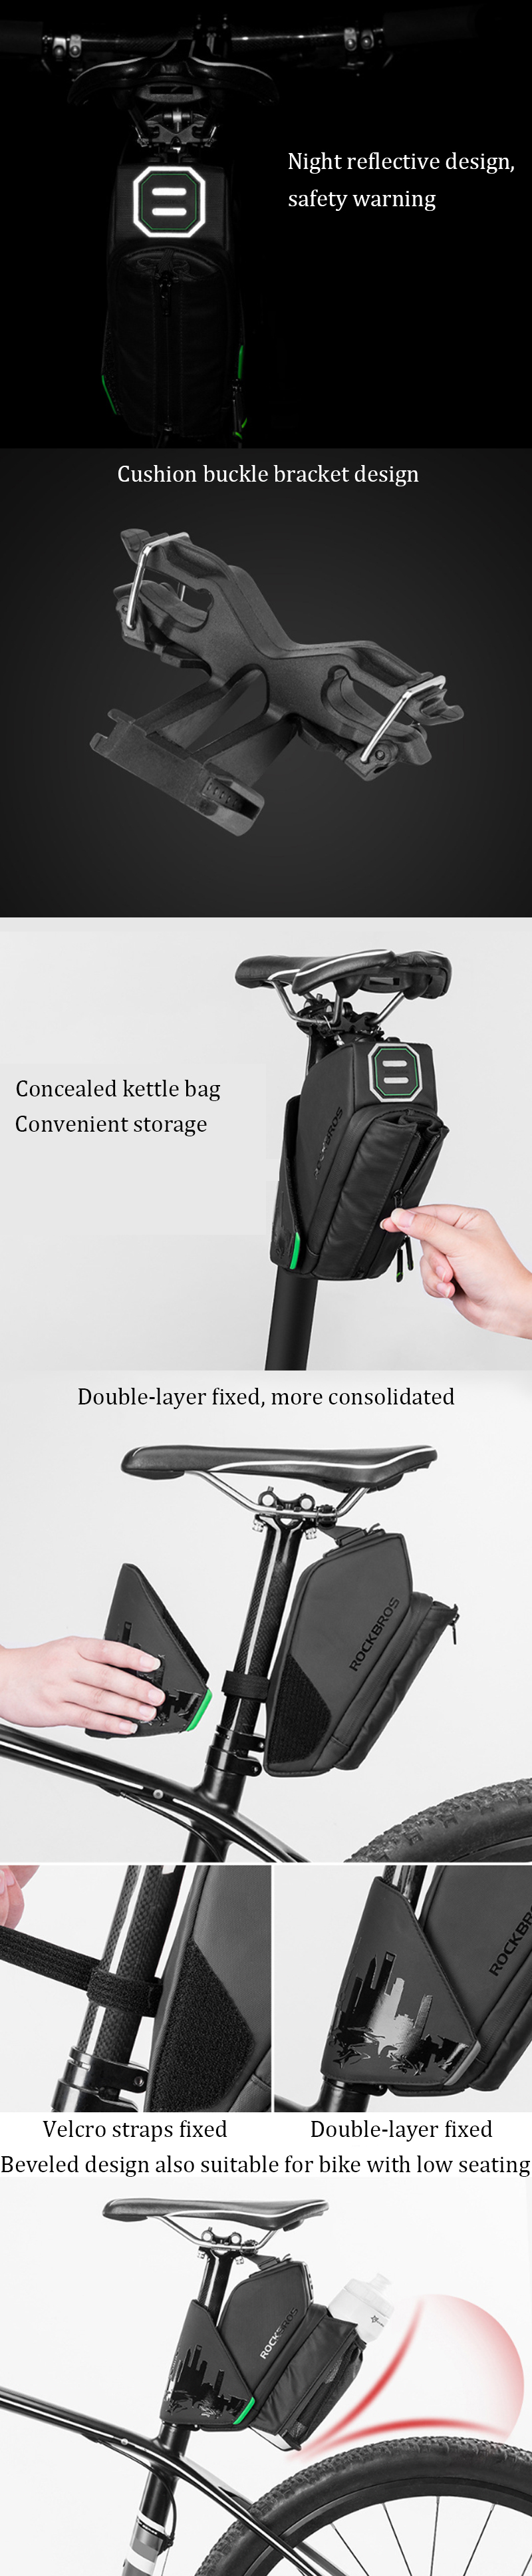 ROCKBROS Bike Bag Saddle Bag With Water Bottle Pocket Waterproof Bicycle Rear Seat Tail Bag Bike Accessories